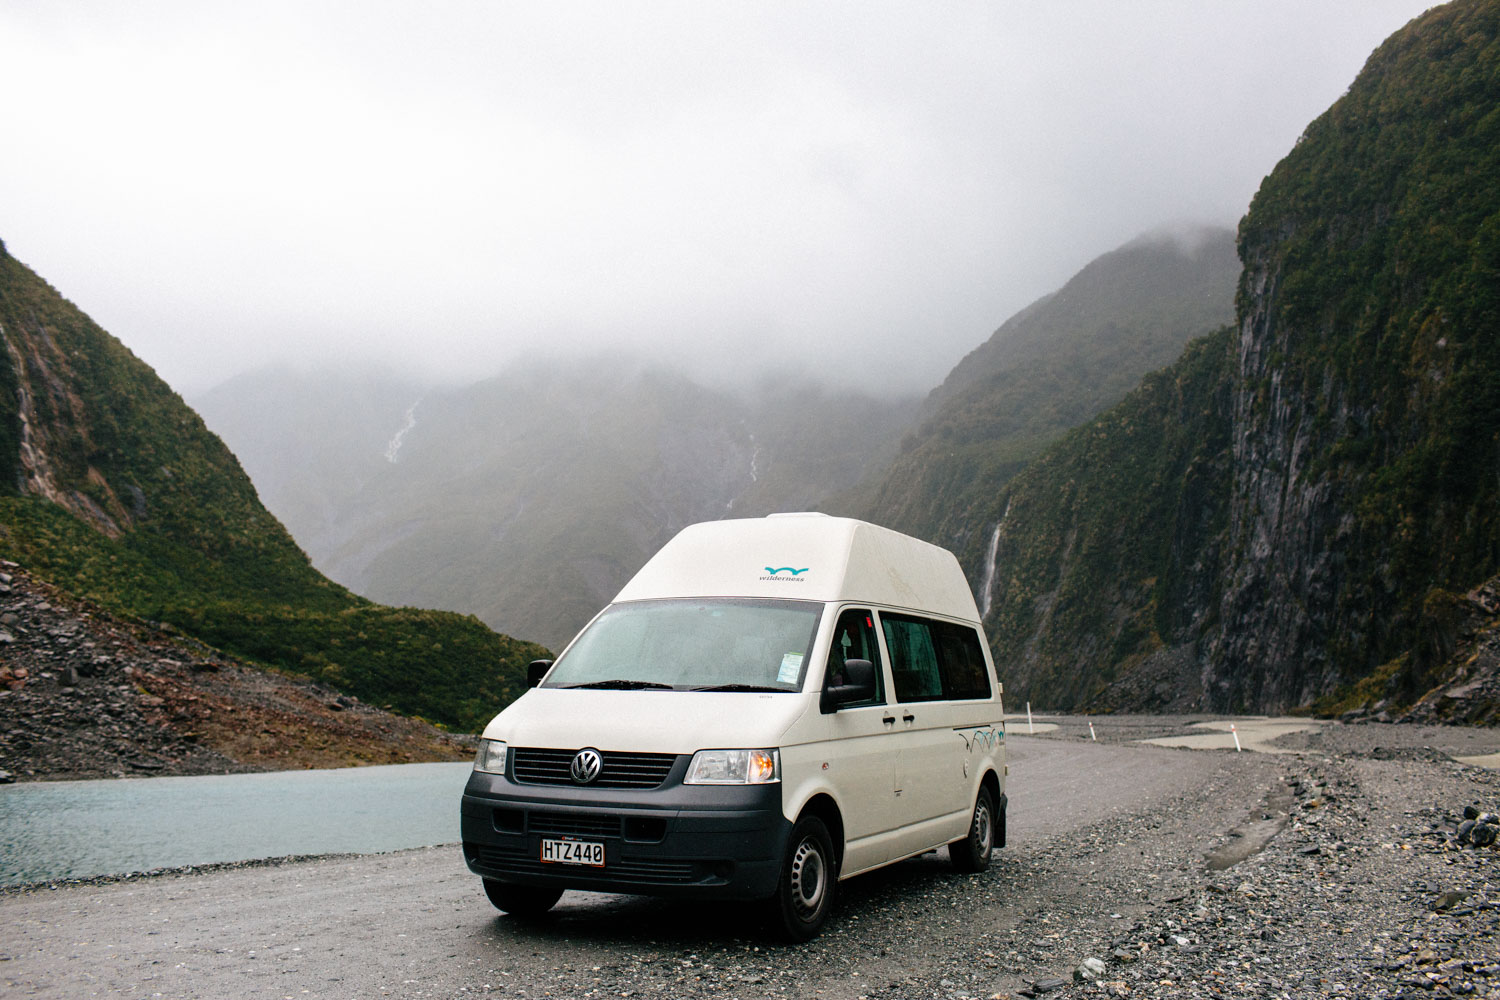 new-zealand-campervan-roadtrip-052.jpg